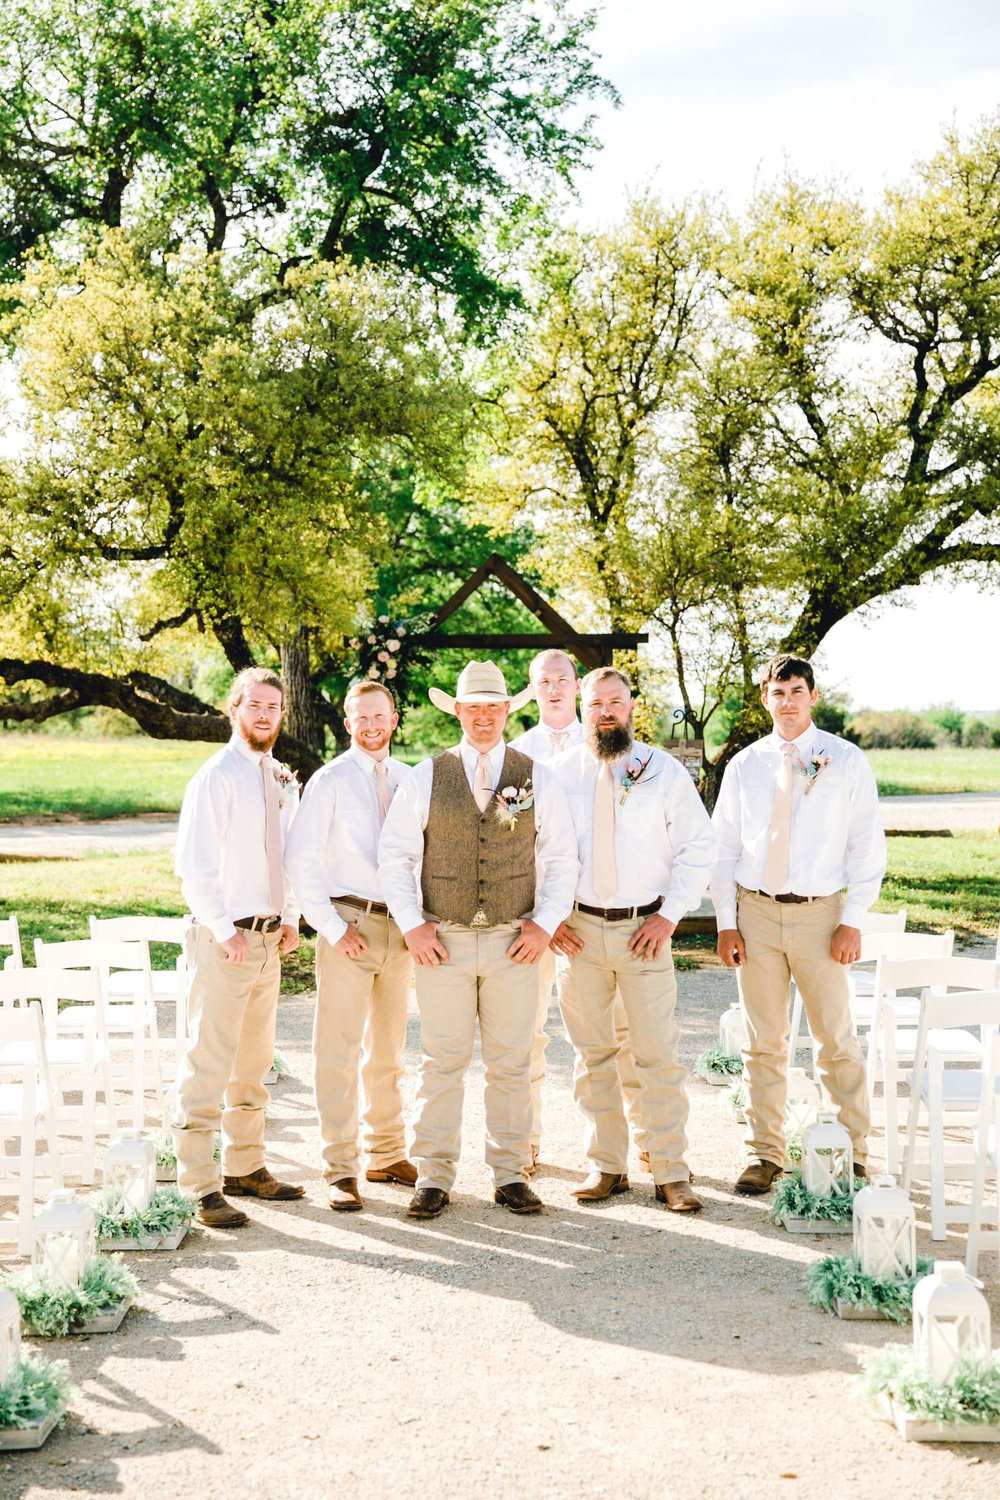 SARAH+TREVOR+BADGETT+SPARROW+CREEK+GRAHAM+TEXAS+ALLEEJ+WEDDINGS_0037.jpg